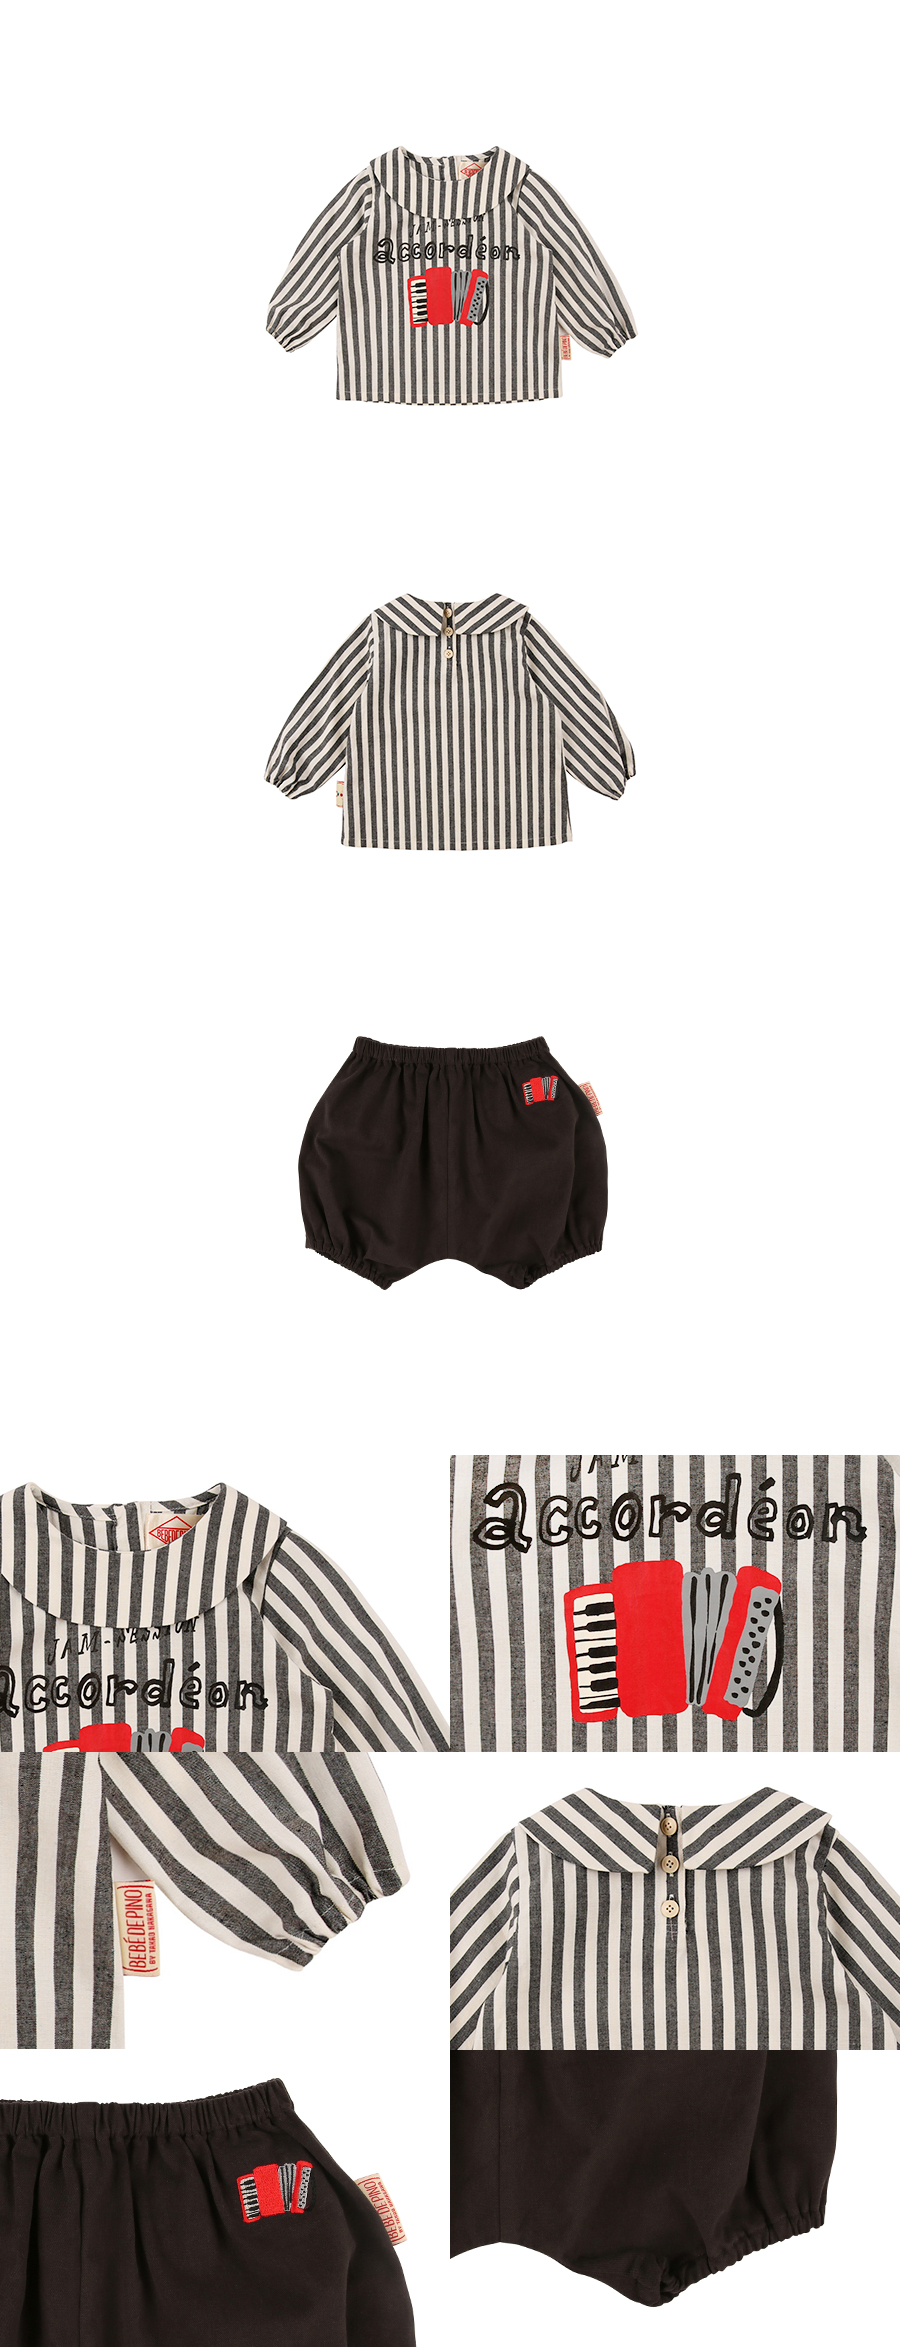 Accordion baby stripe set 상세 이미지